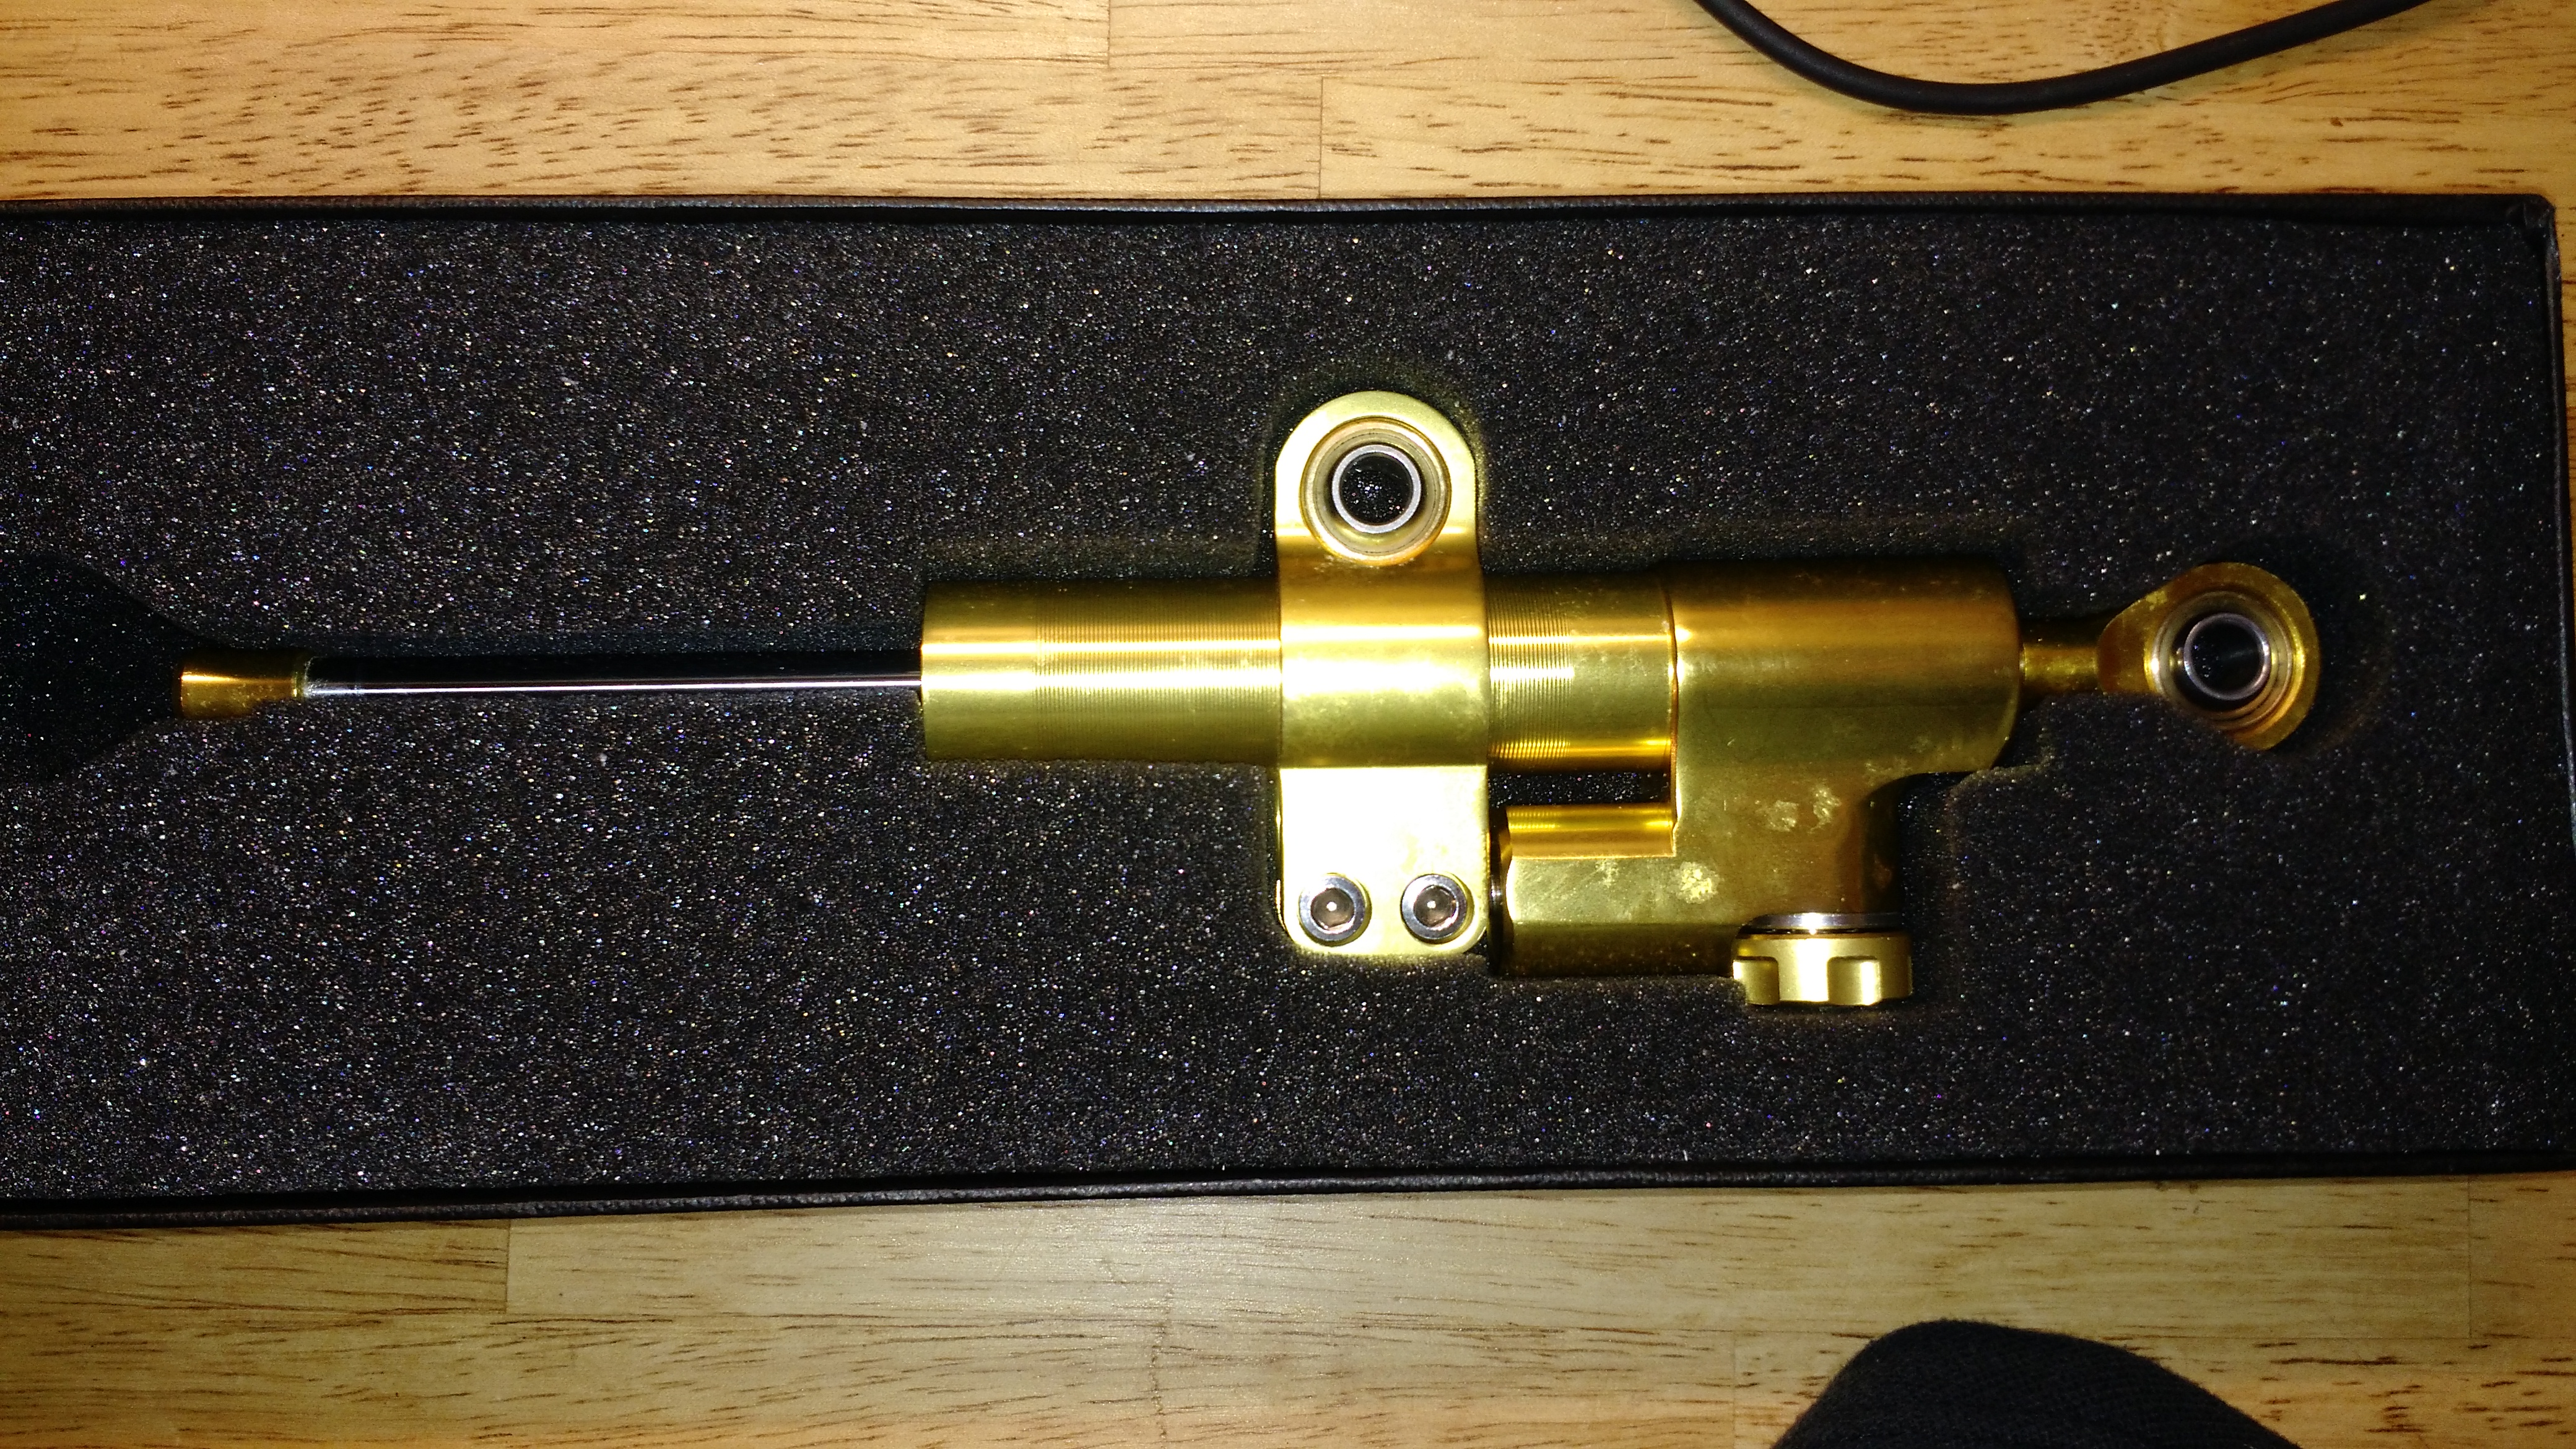 GSXR front end swap and R1 rear-new_gold_damper.jpg